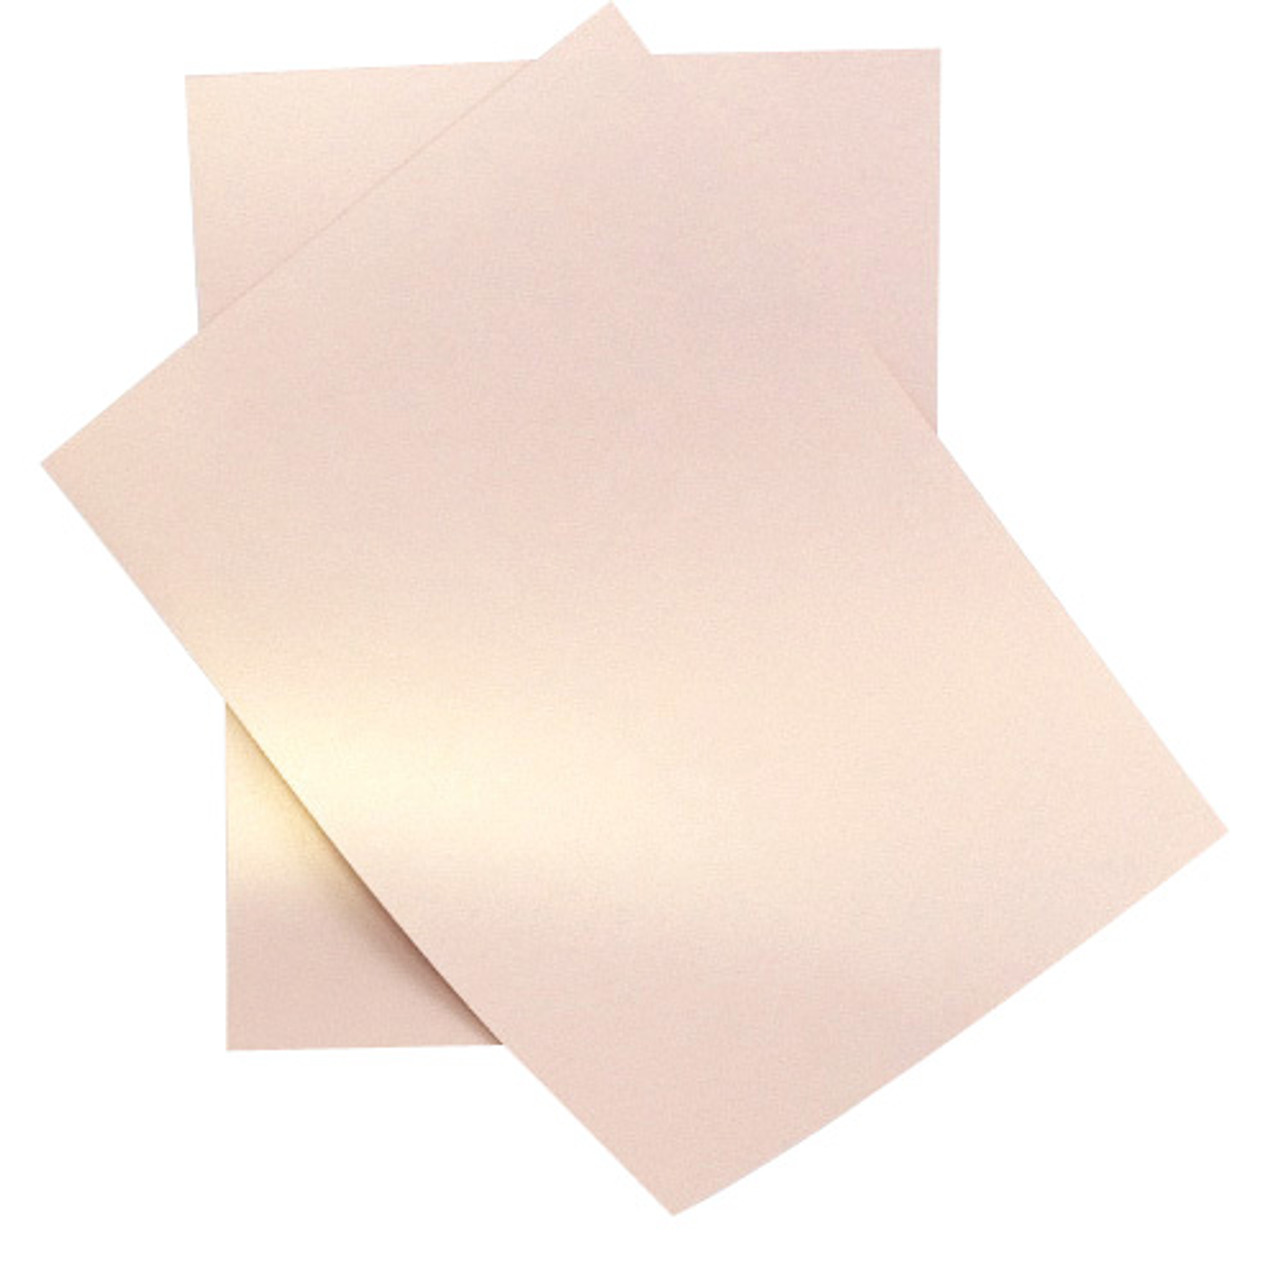 Pearlised 120gsm Ice White Double Sided Shimmer Paper